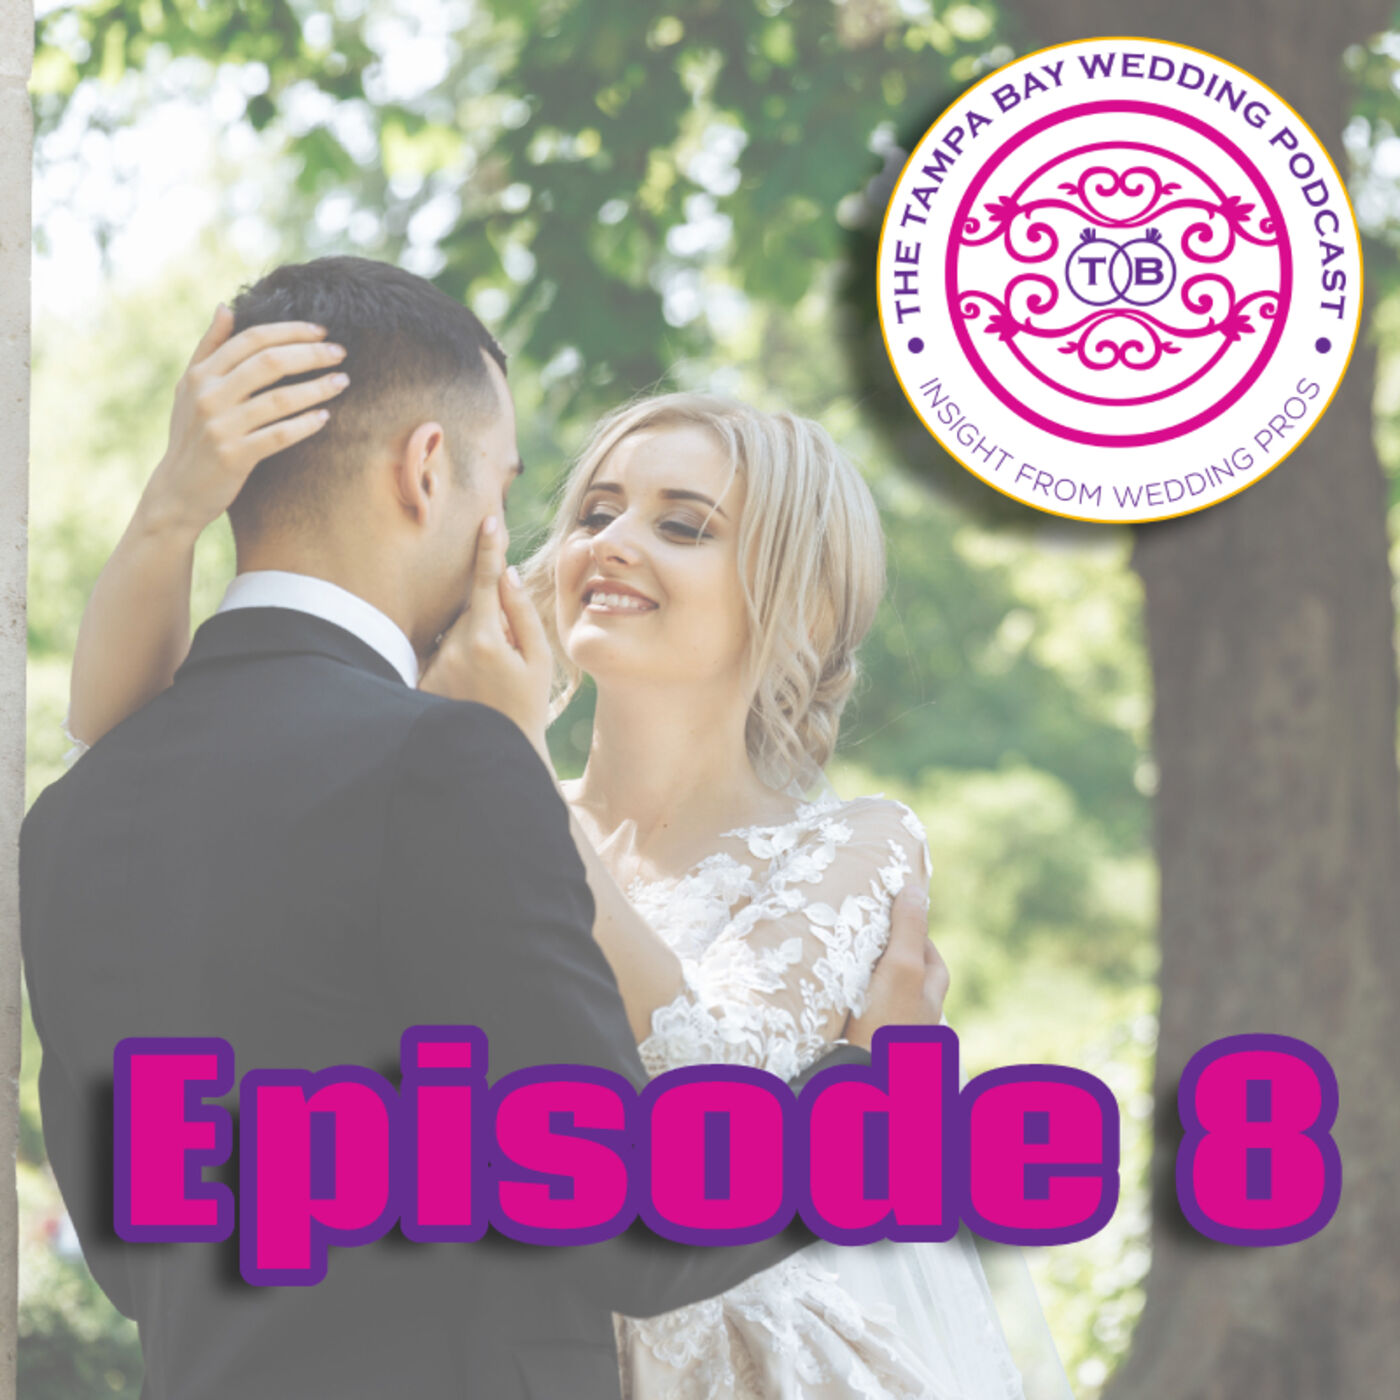 The Tampa Bay Wedding Podcast, Episode 8: Maid of Honor & Best Man, What are their REAL responsibilities?